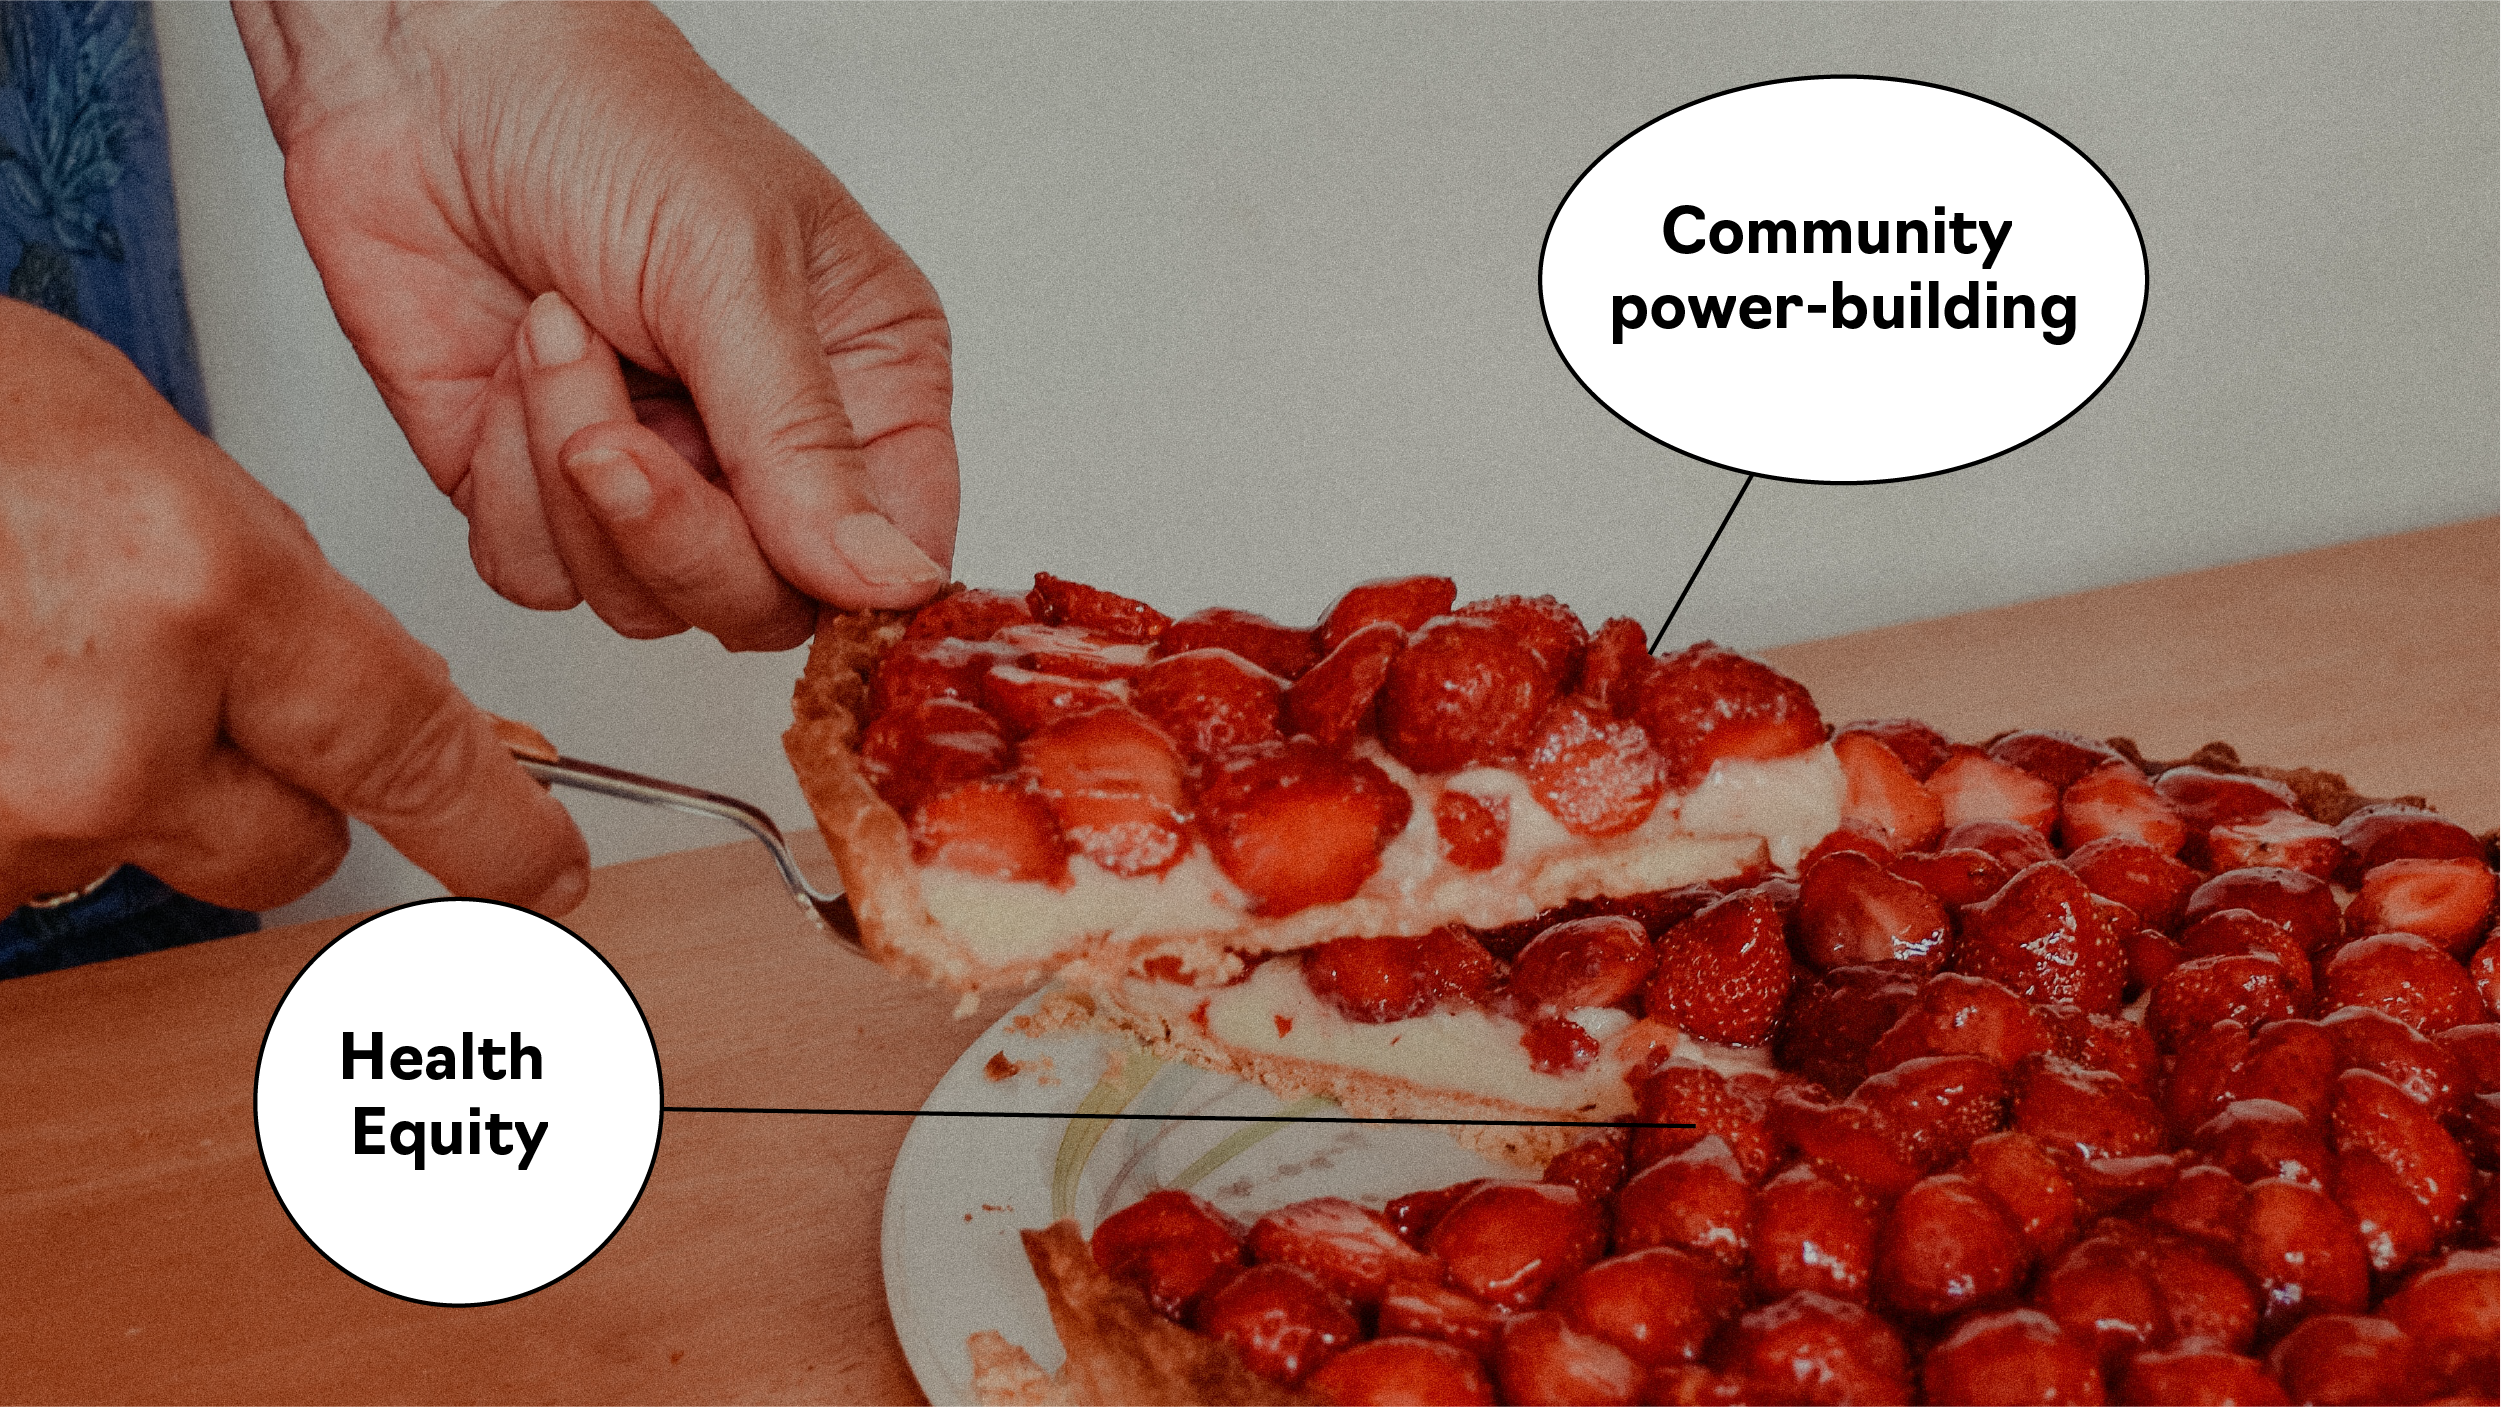 """Image of person's hands cutting a slice of strawberry pie. The slice is labelled """"community power-building"""" and the pie itself is labelled """"health equity."""""""